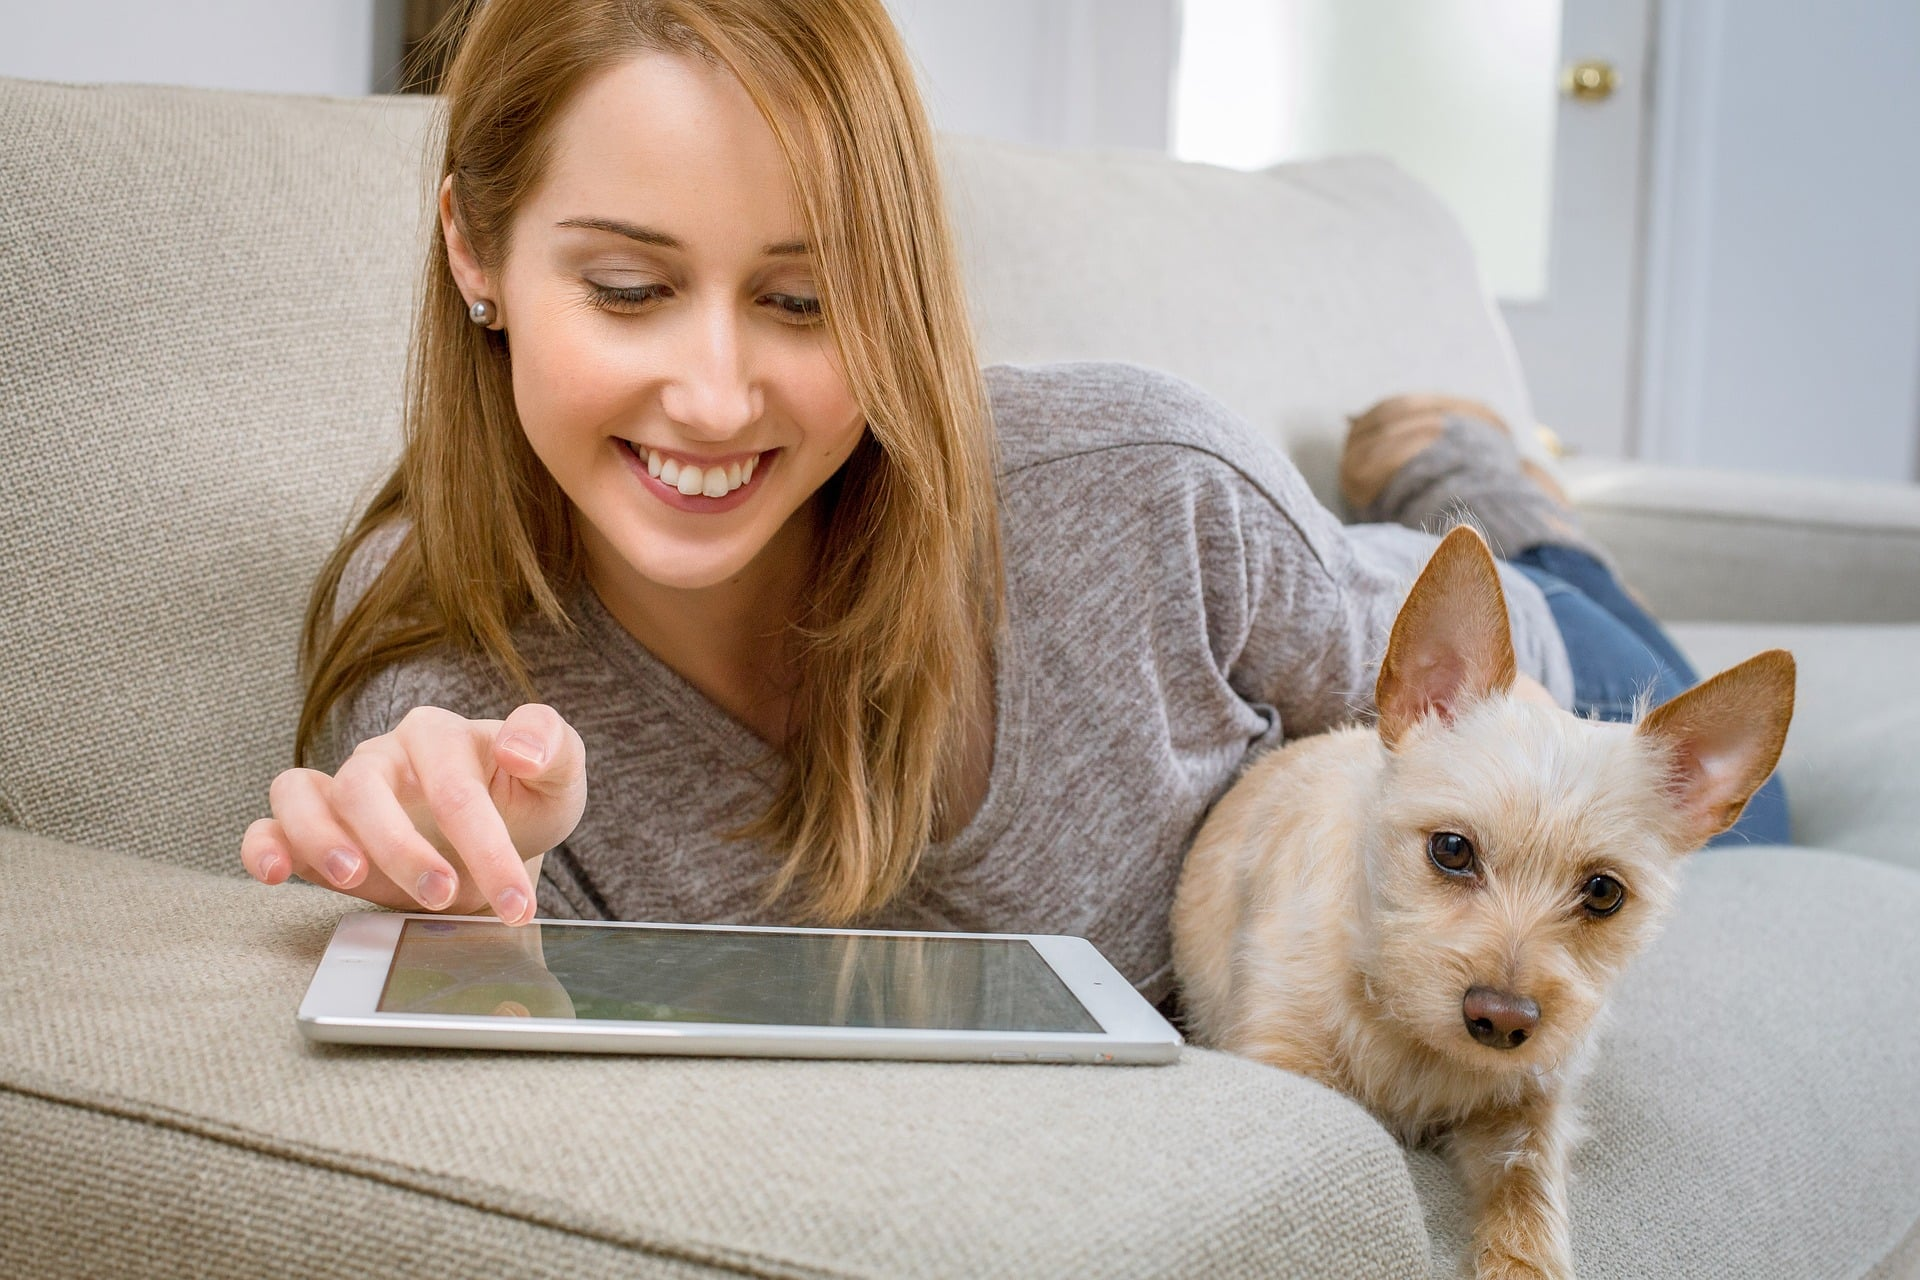 SpaDental top dental blogs with woman reading from a tablet and holding a dog